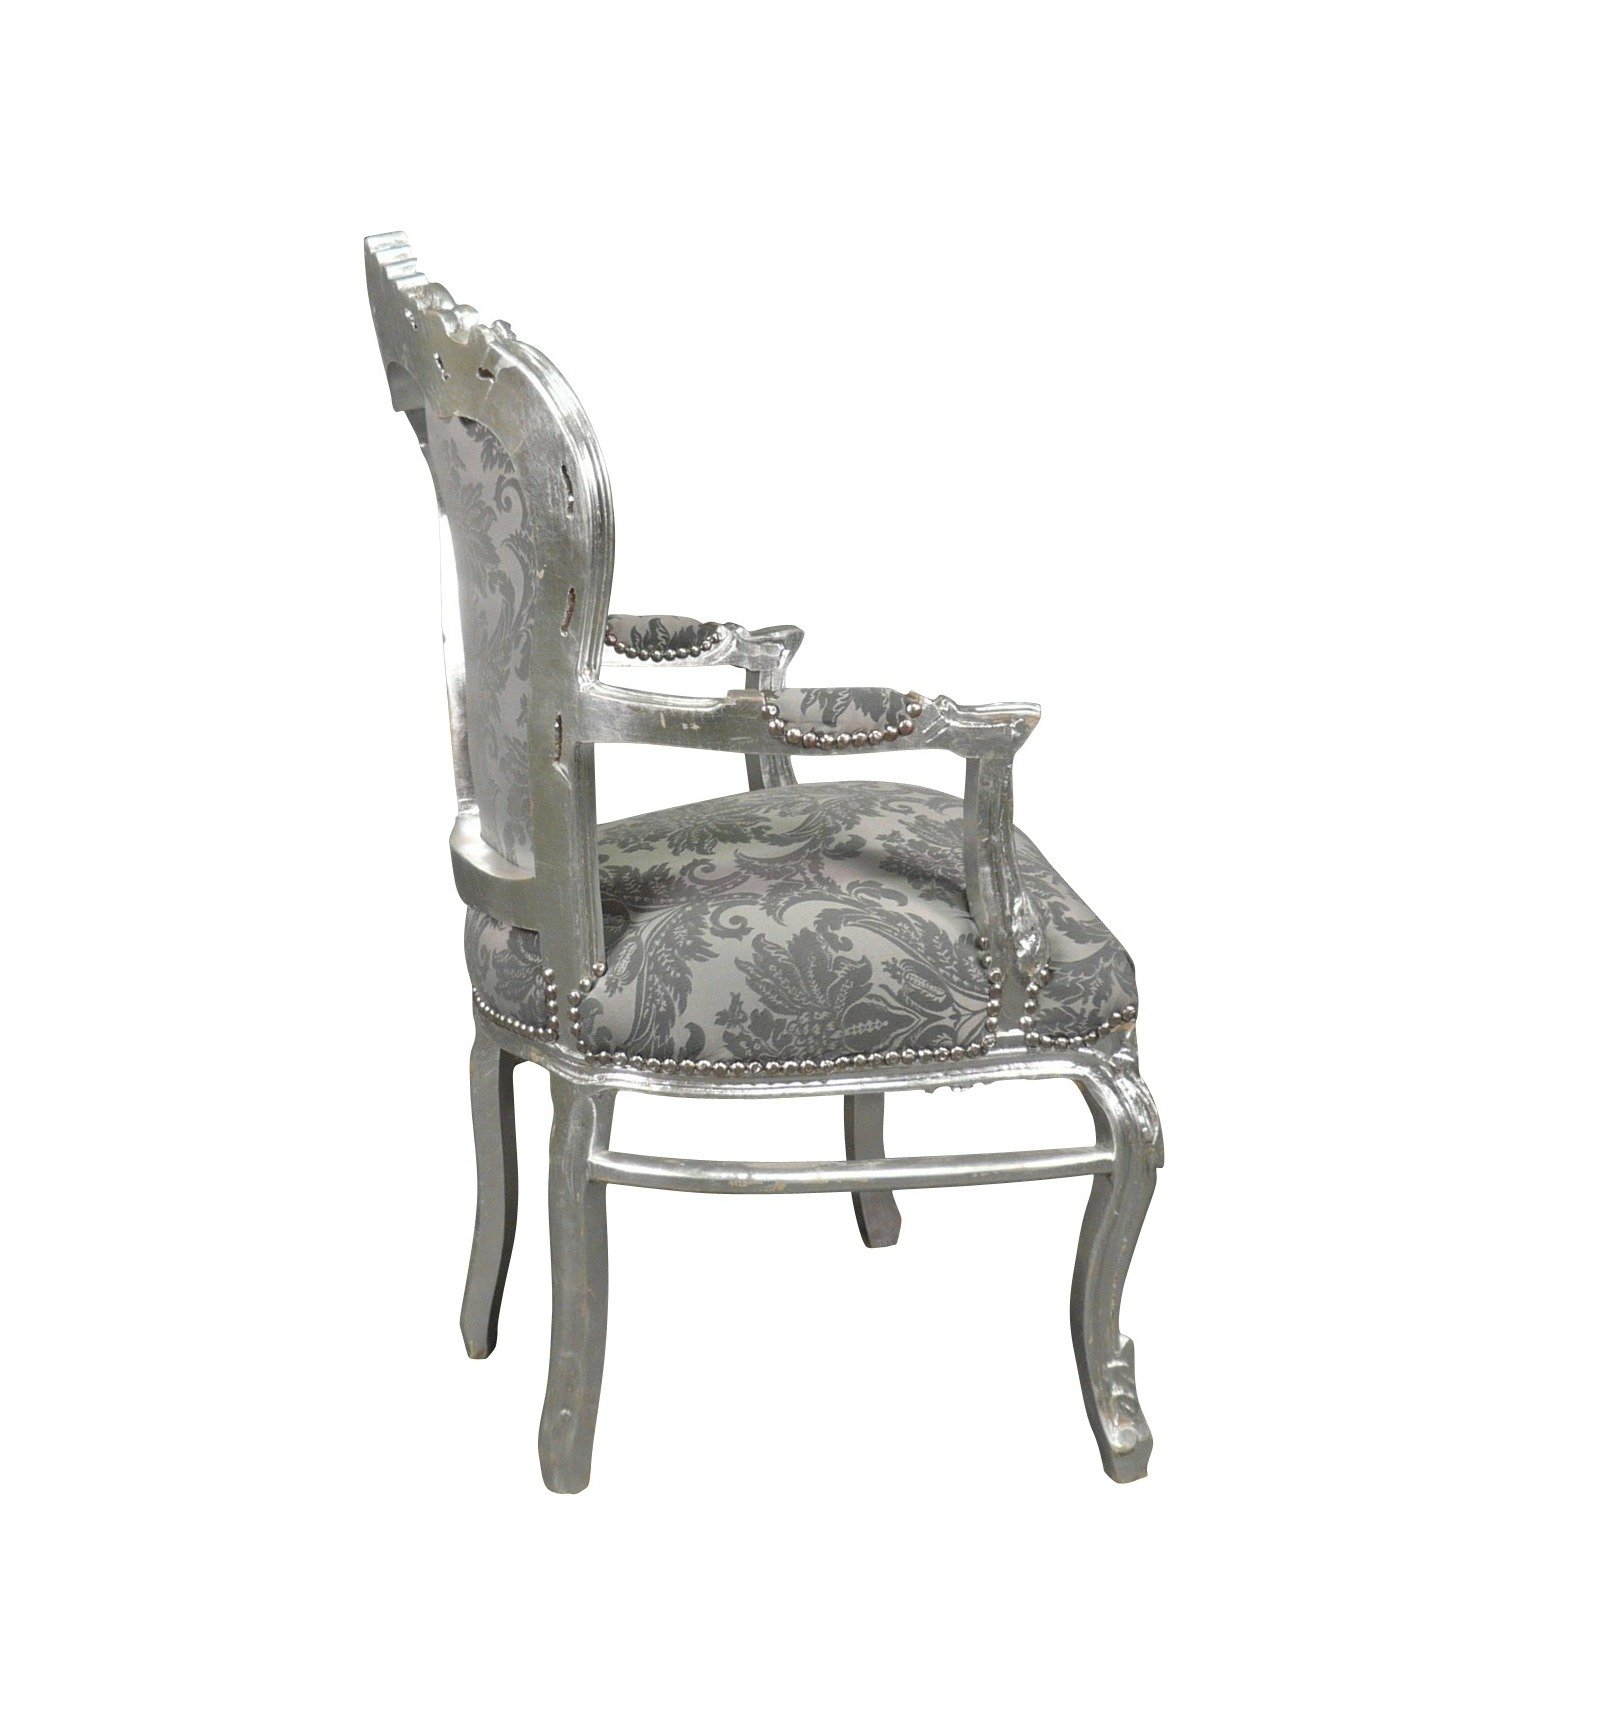 fauteuil baroque en tissu gris rococo ameublement baroque. Black Bedroom Furniture Sets. Home Design Ideas